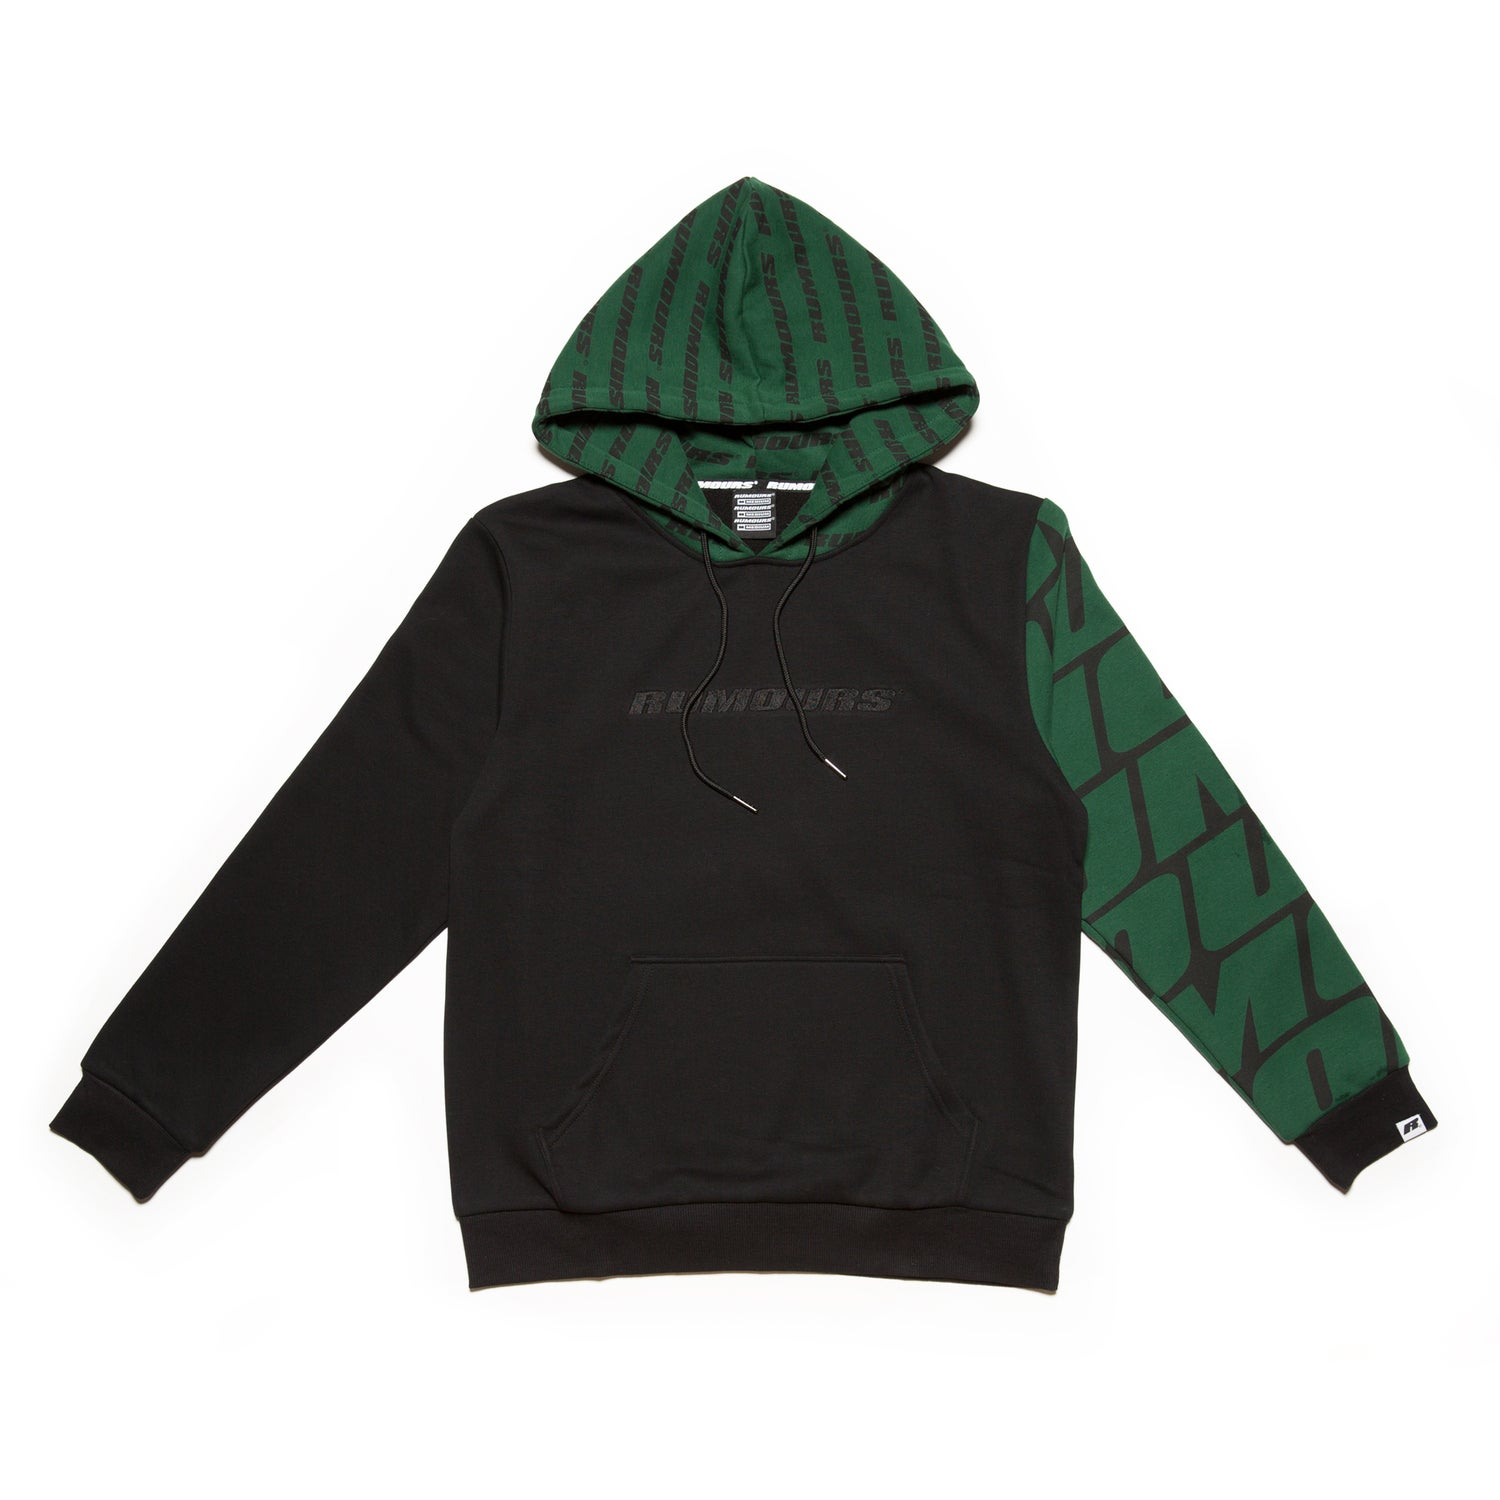 Image of Trifecta Hooded Sweatshirt